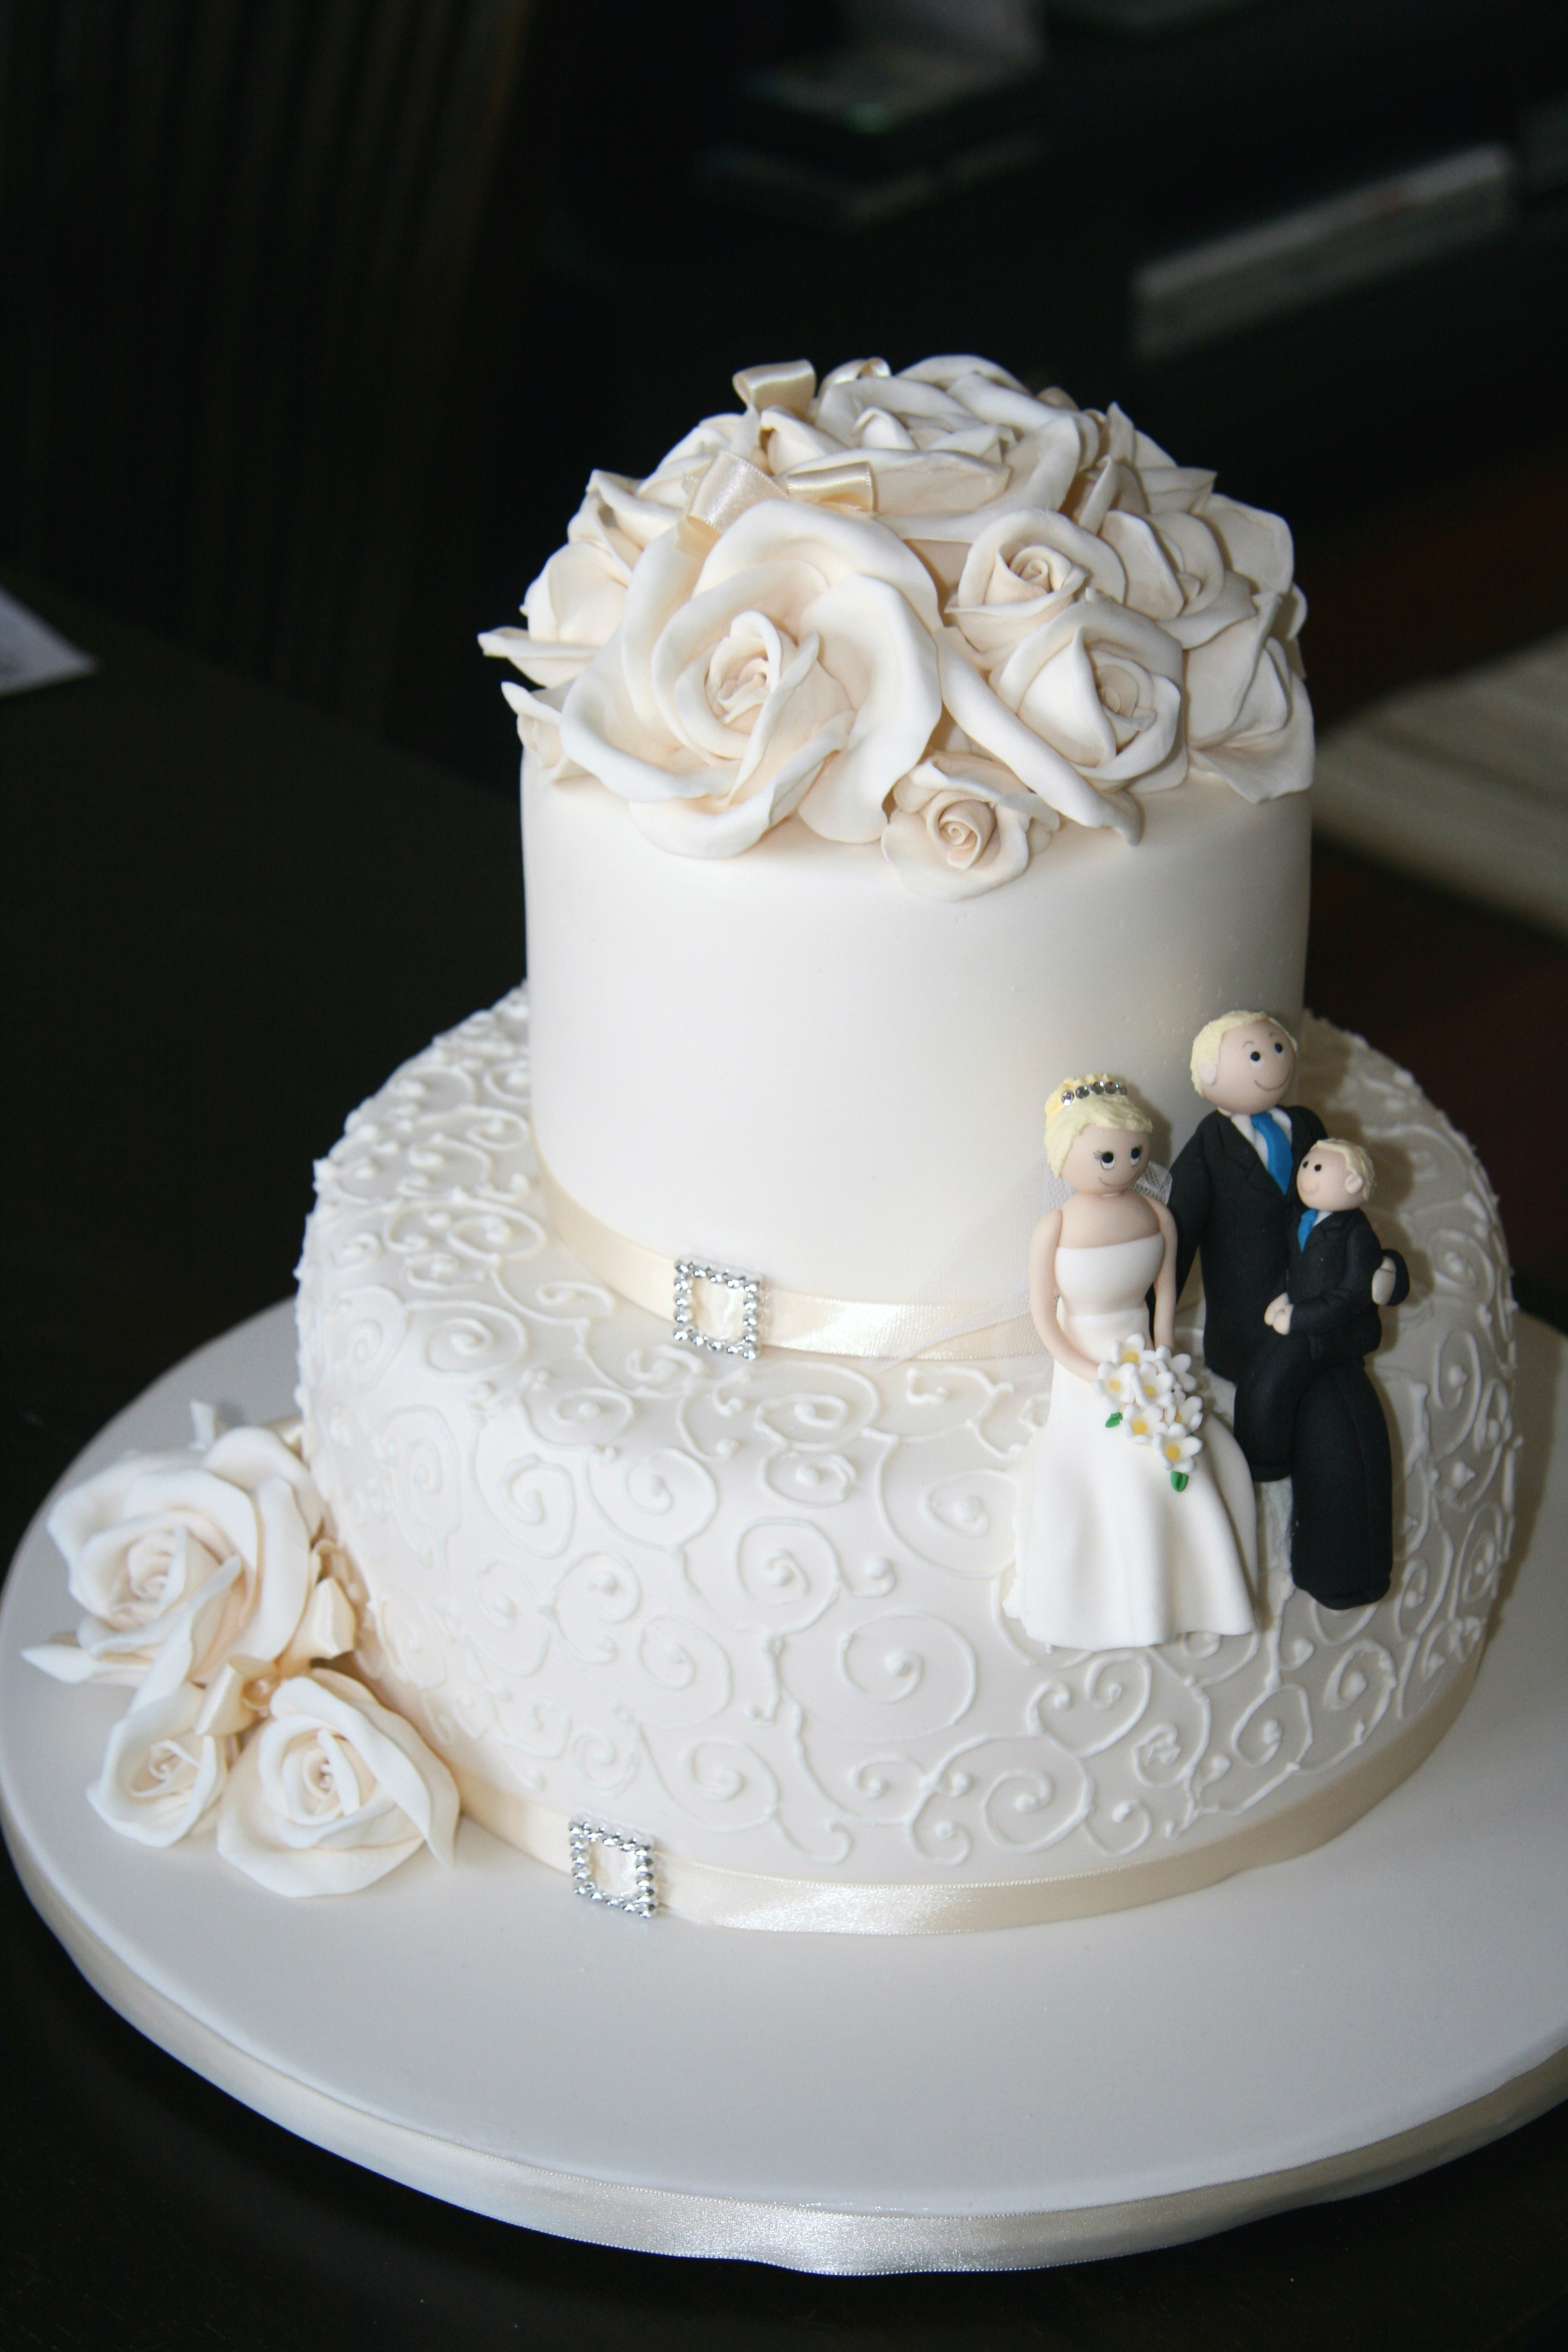 2 Tier Wedding Cakes  25 CUTE SMALL WEDDING CAKES FOR THE SPECIAL OCCASSION